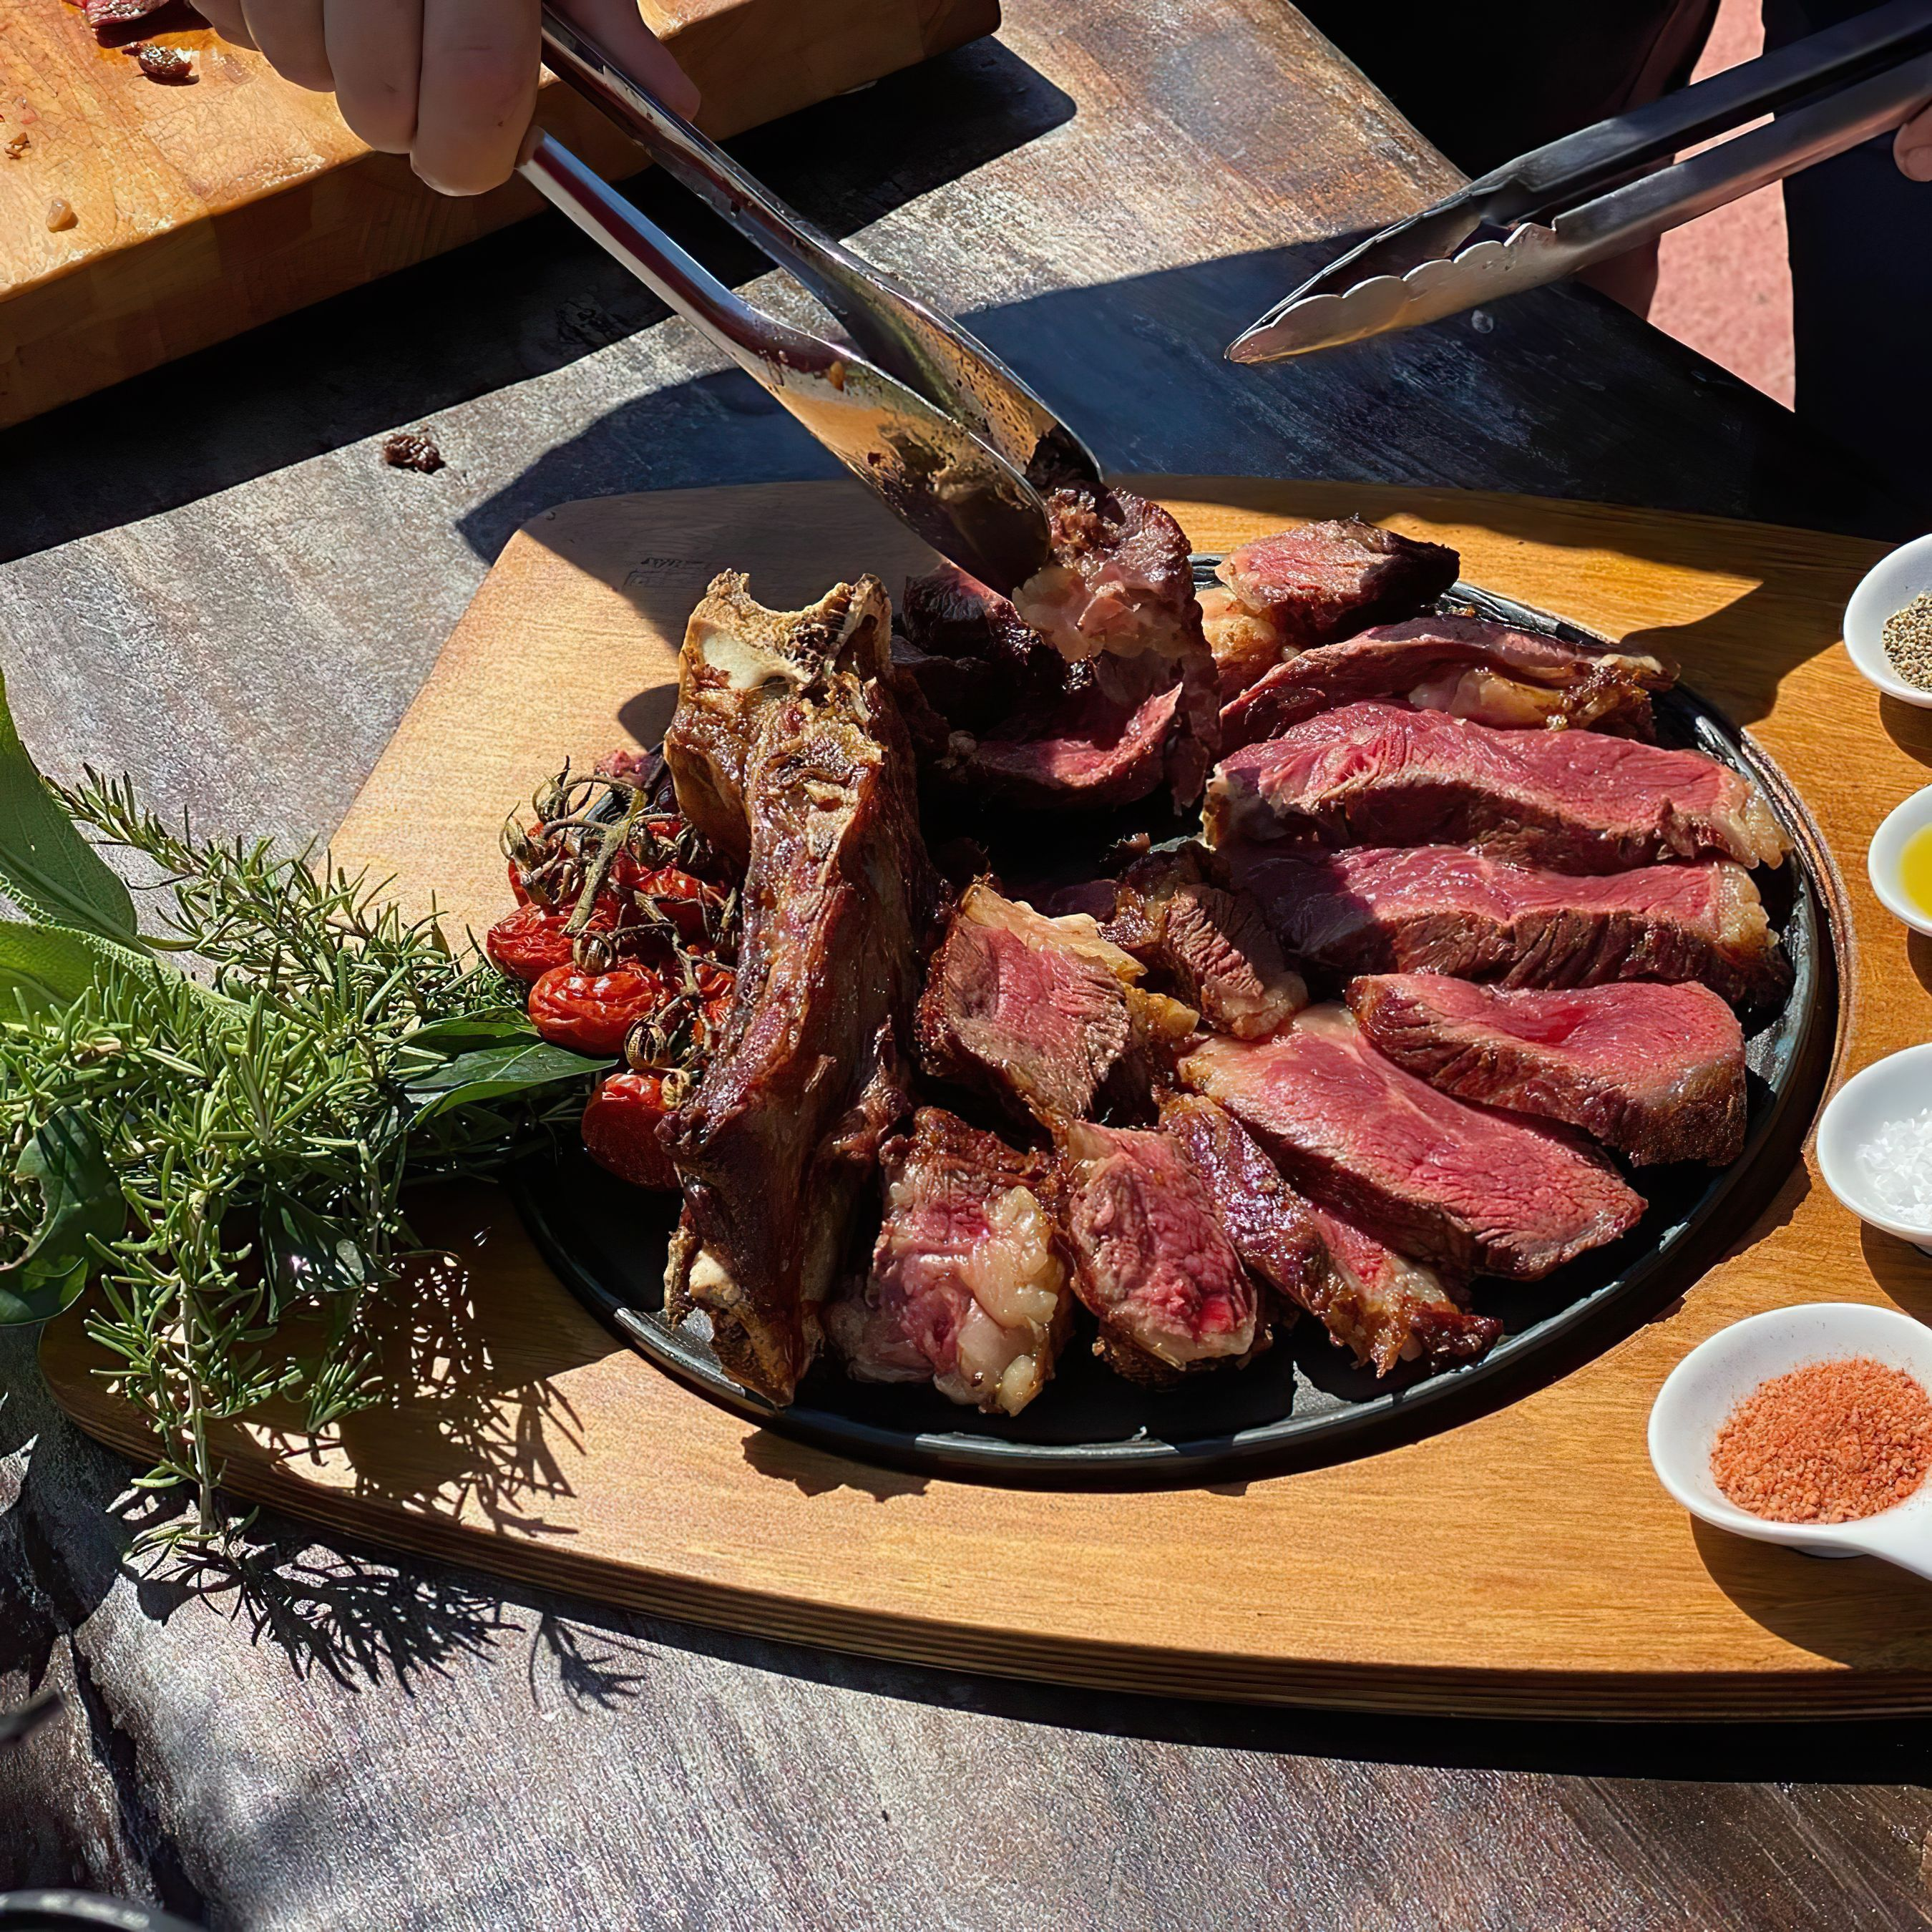 Let's Talk About Grilling Meat